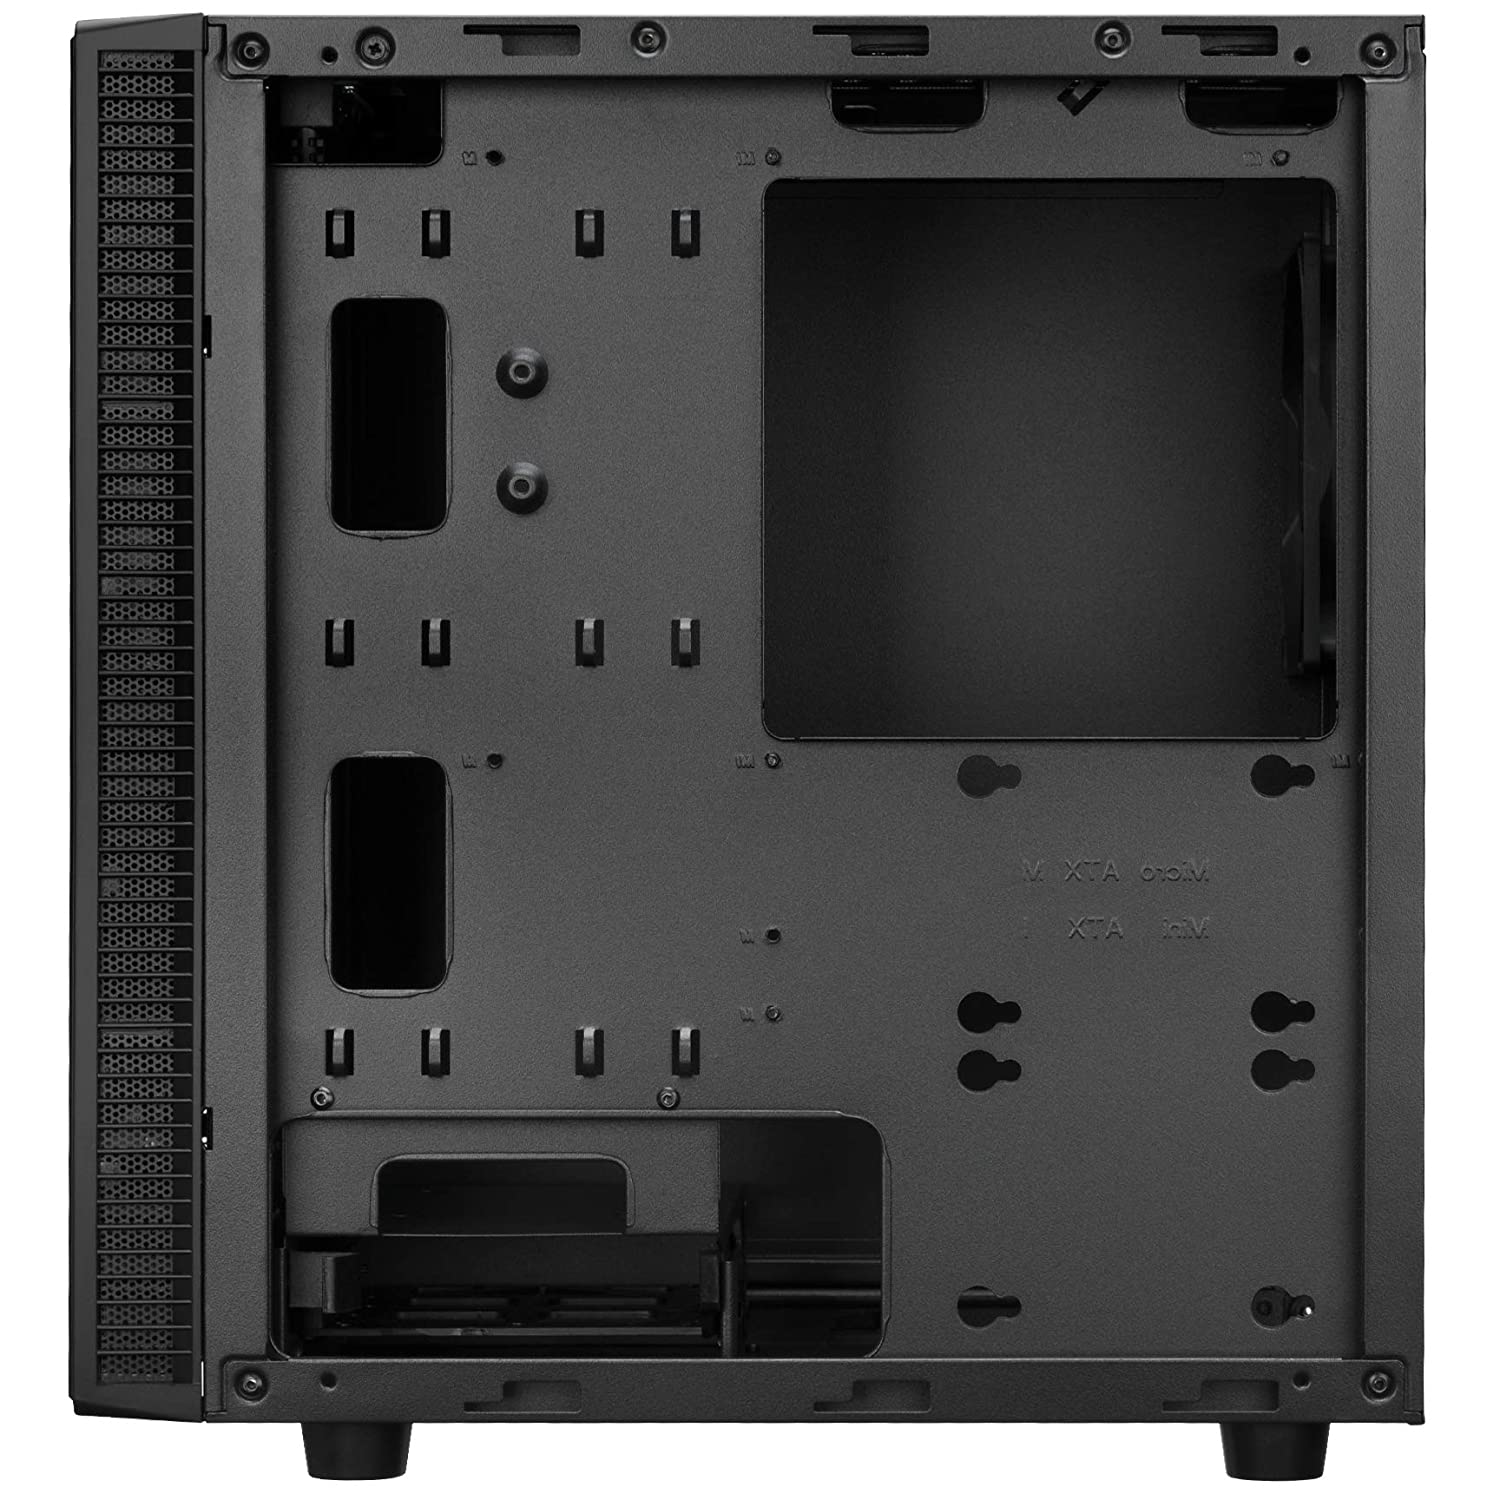 Amazon.com: Rosewill Micro ATX Mini Tower Computer Case, Sleek and Simple Quiet Style Gaming Desktop PC, Front I/O USB 3.0, 240mm Radiator Support - FBM-X2: ...